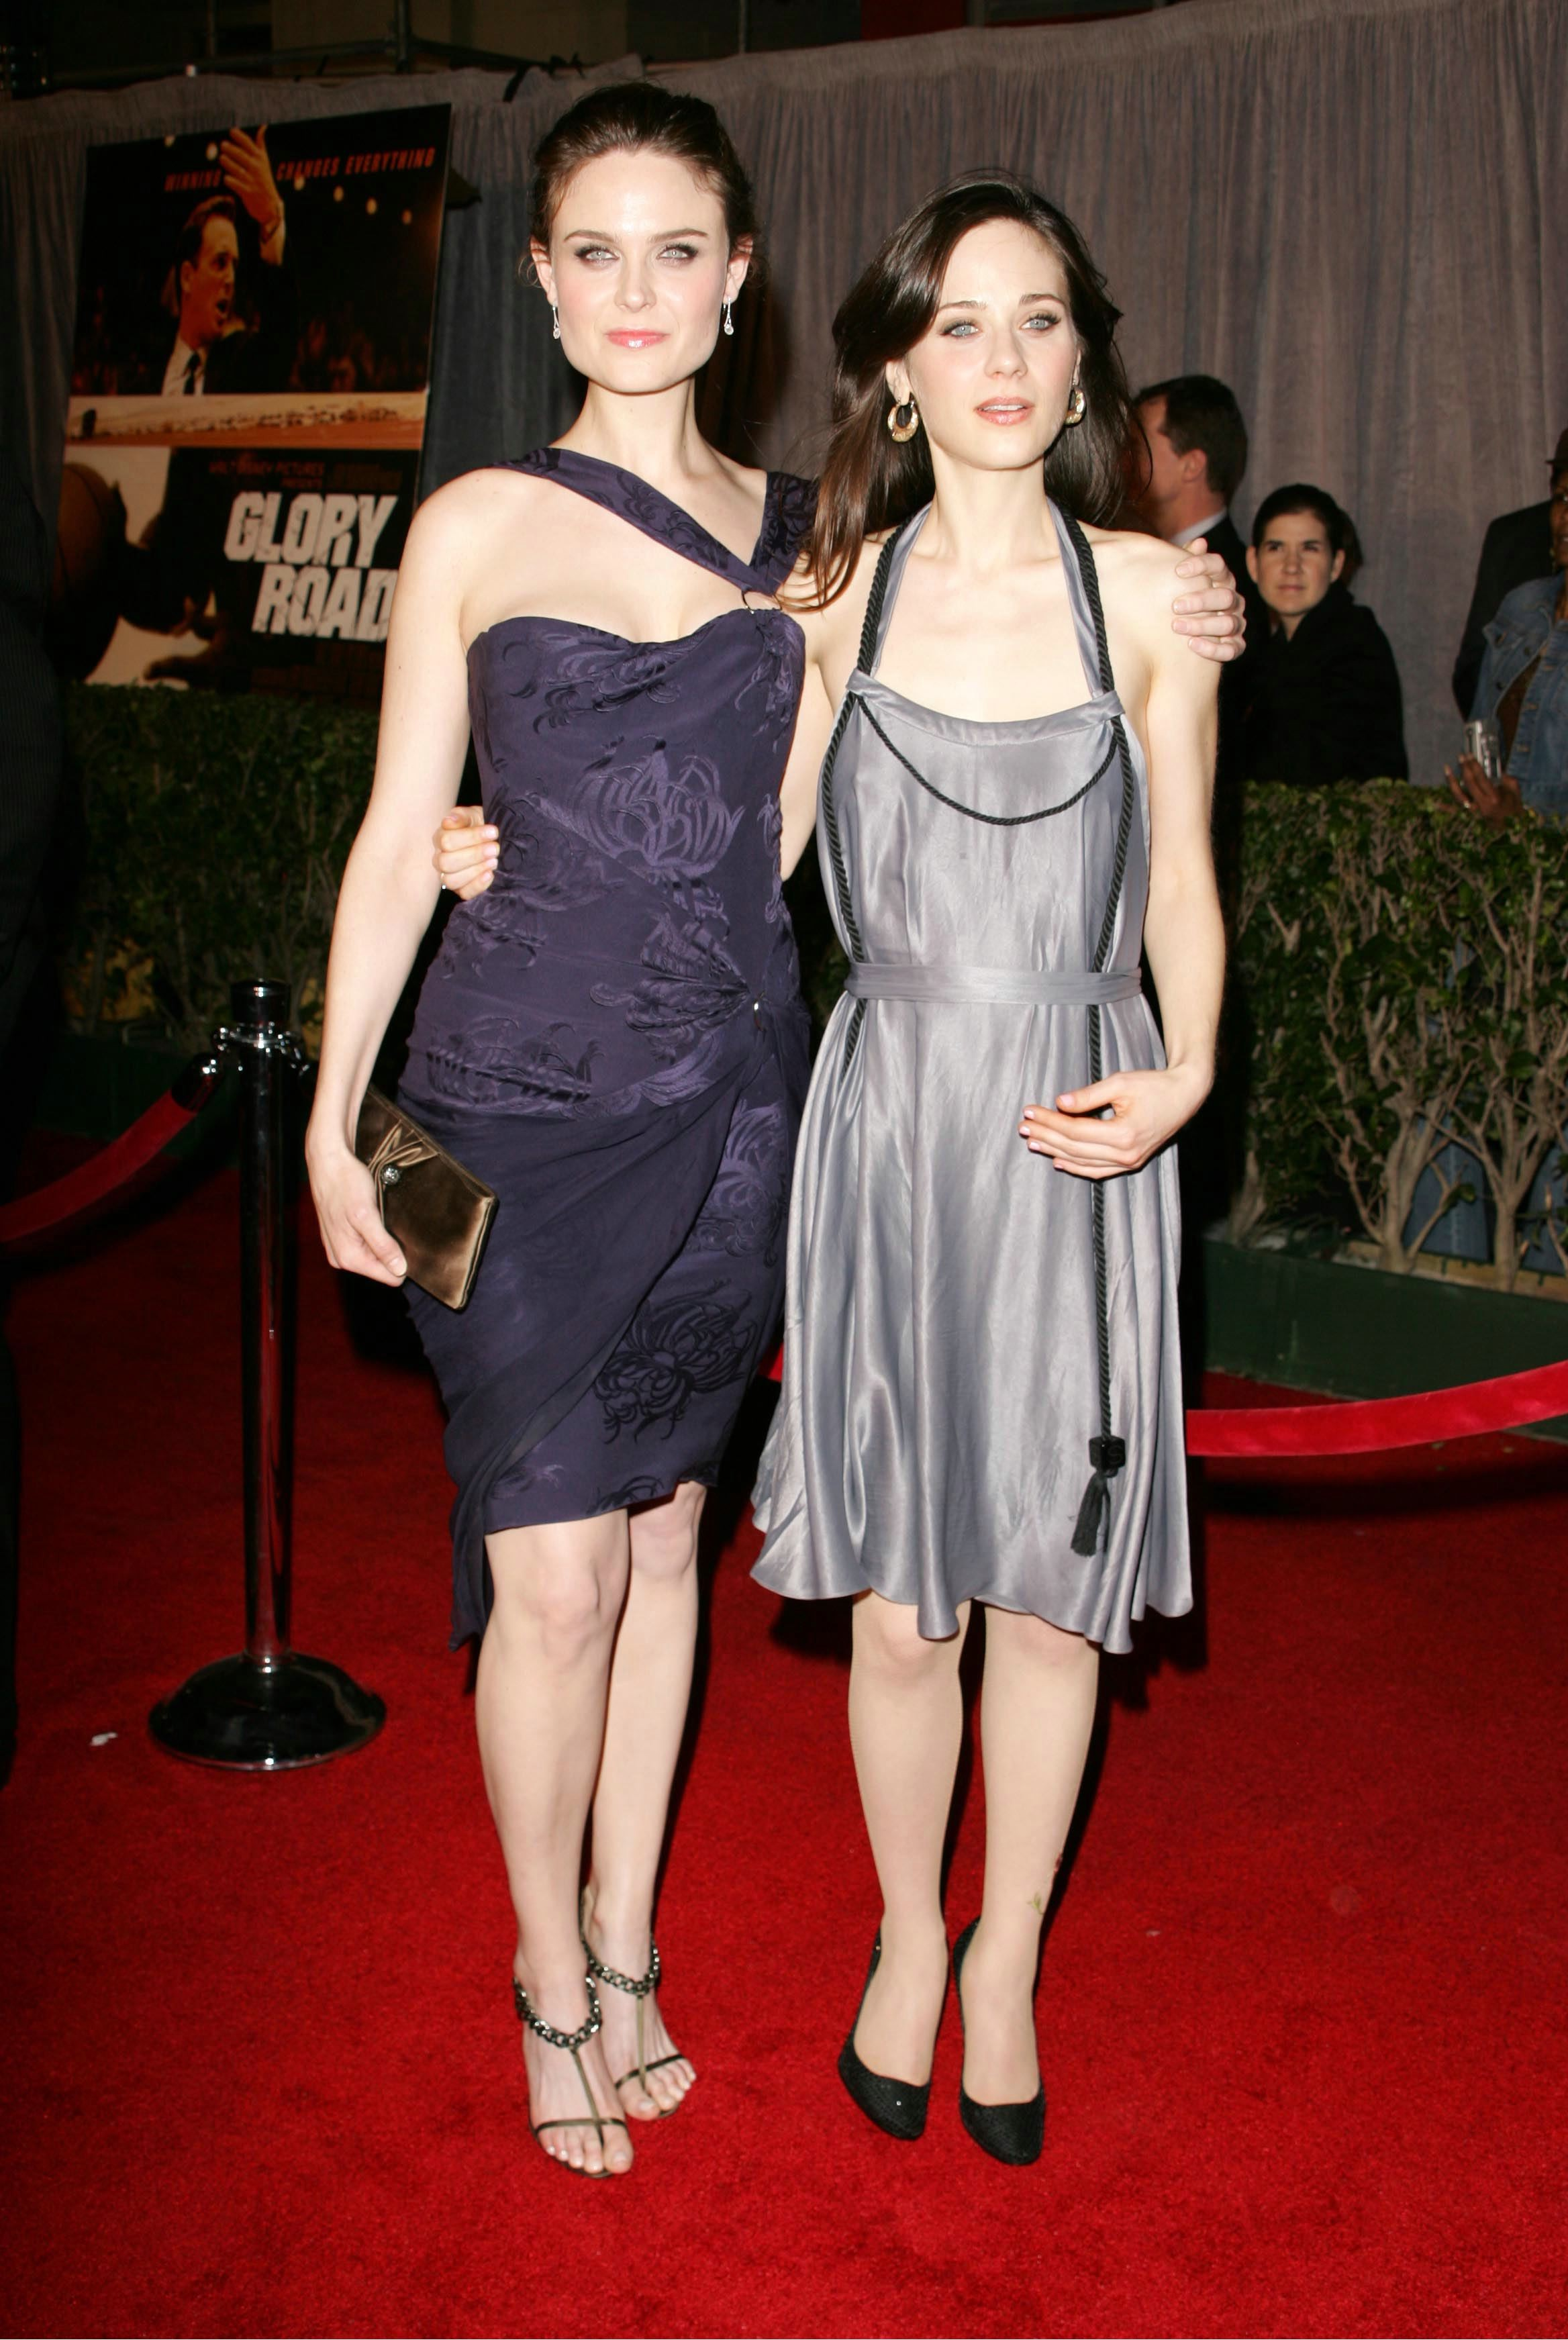 Emily deschanel feet and legs - Sex archive